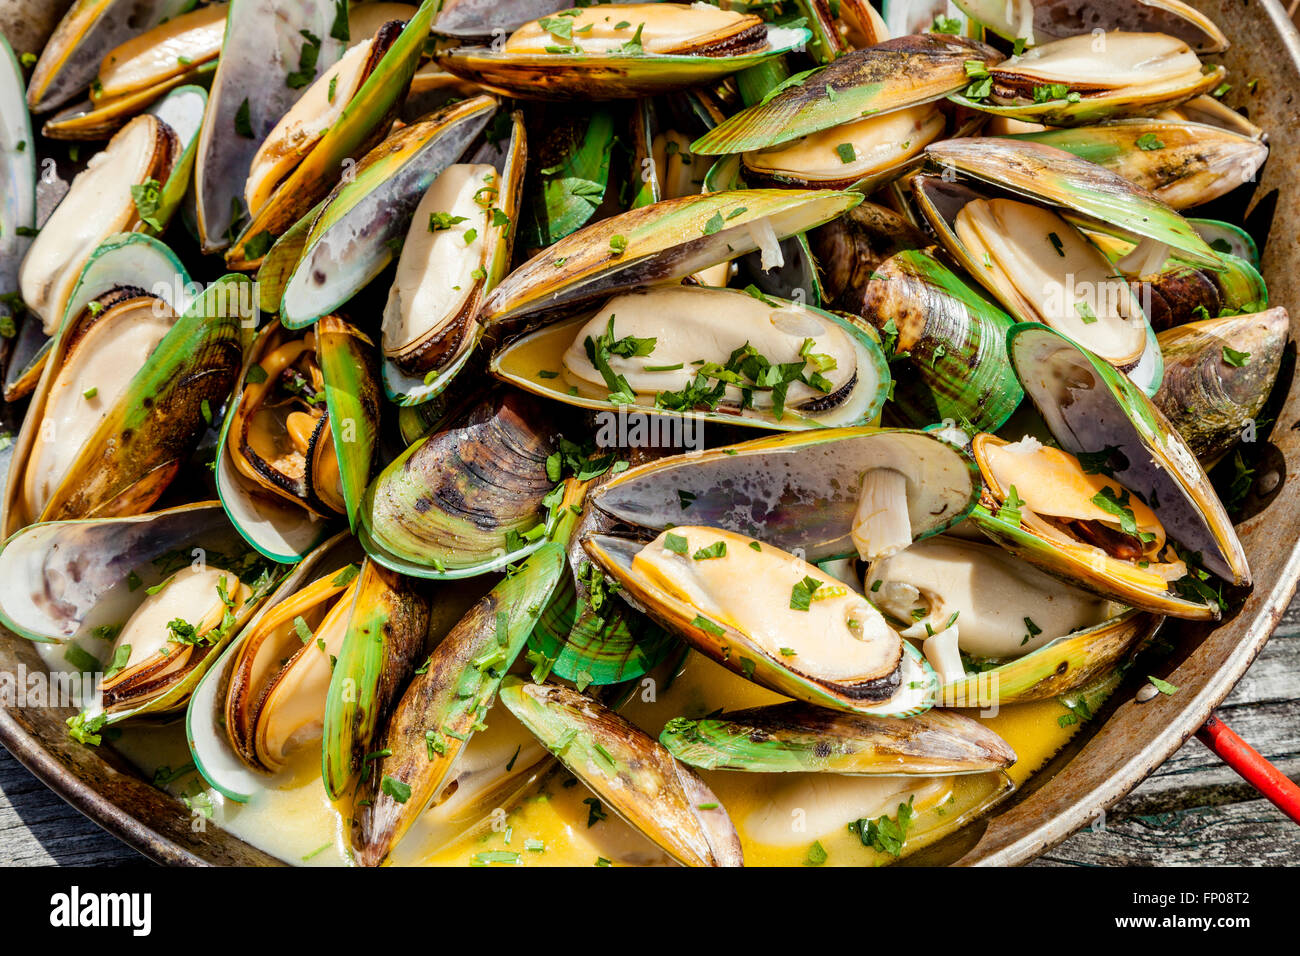 New Zealand Green-Lipped Mussels, Restaurant, Waipu, North island, New Zealand - Stock Image